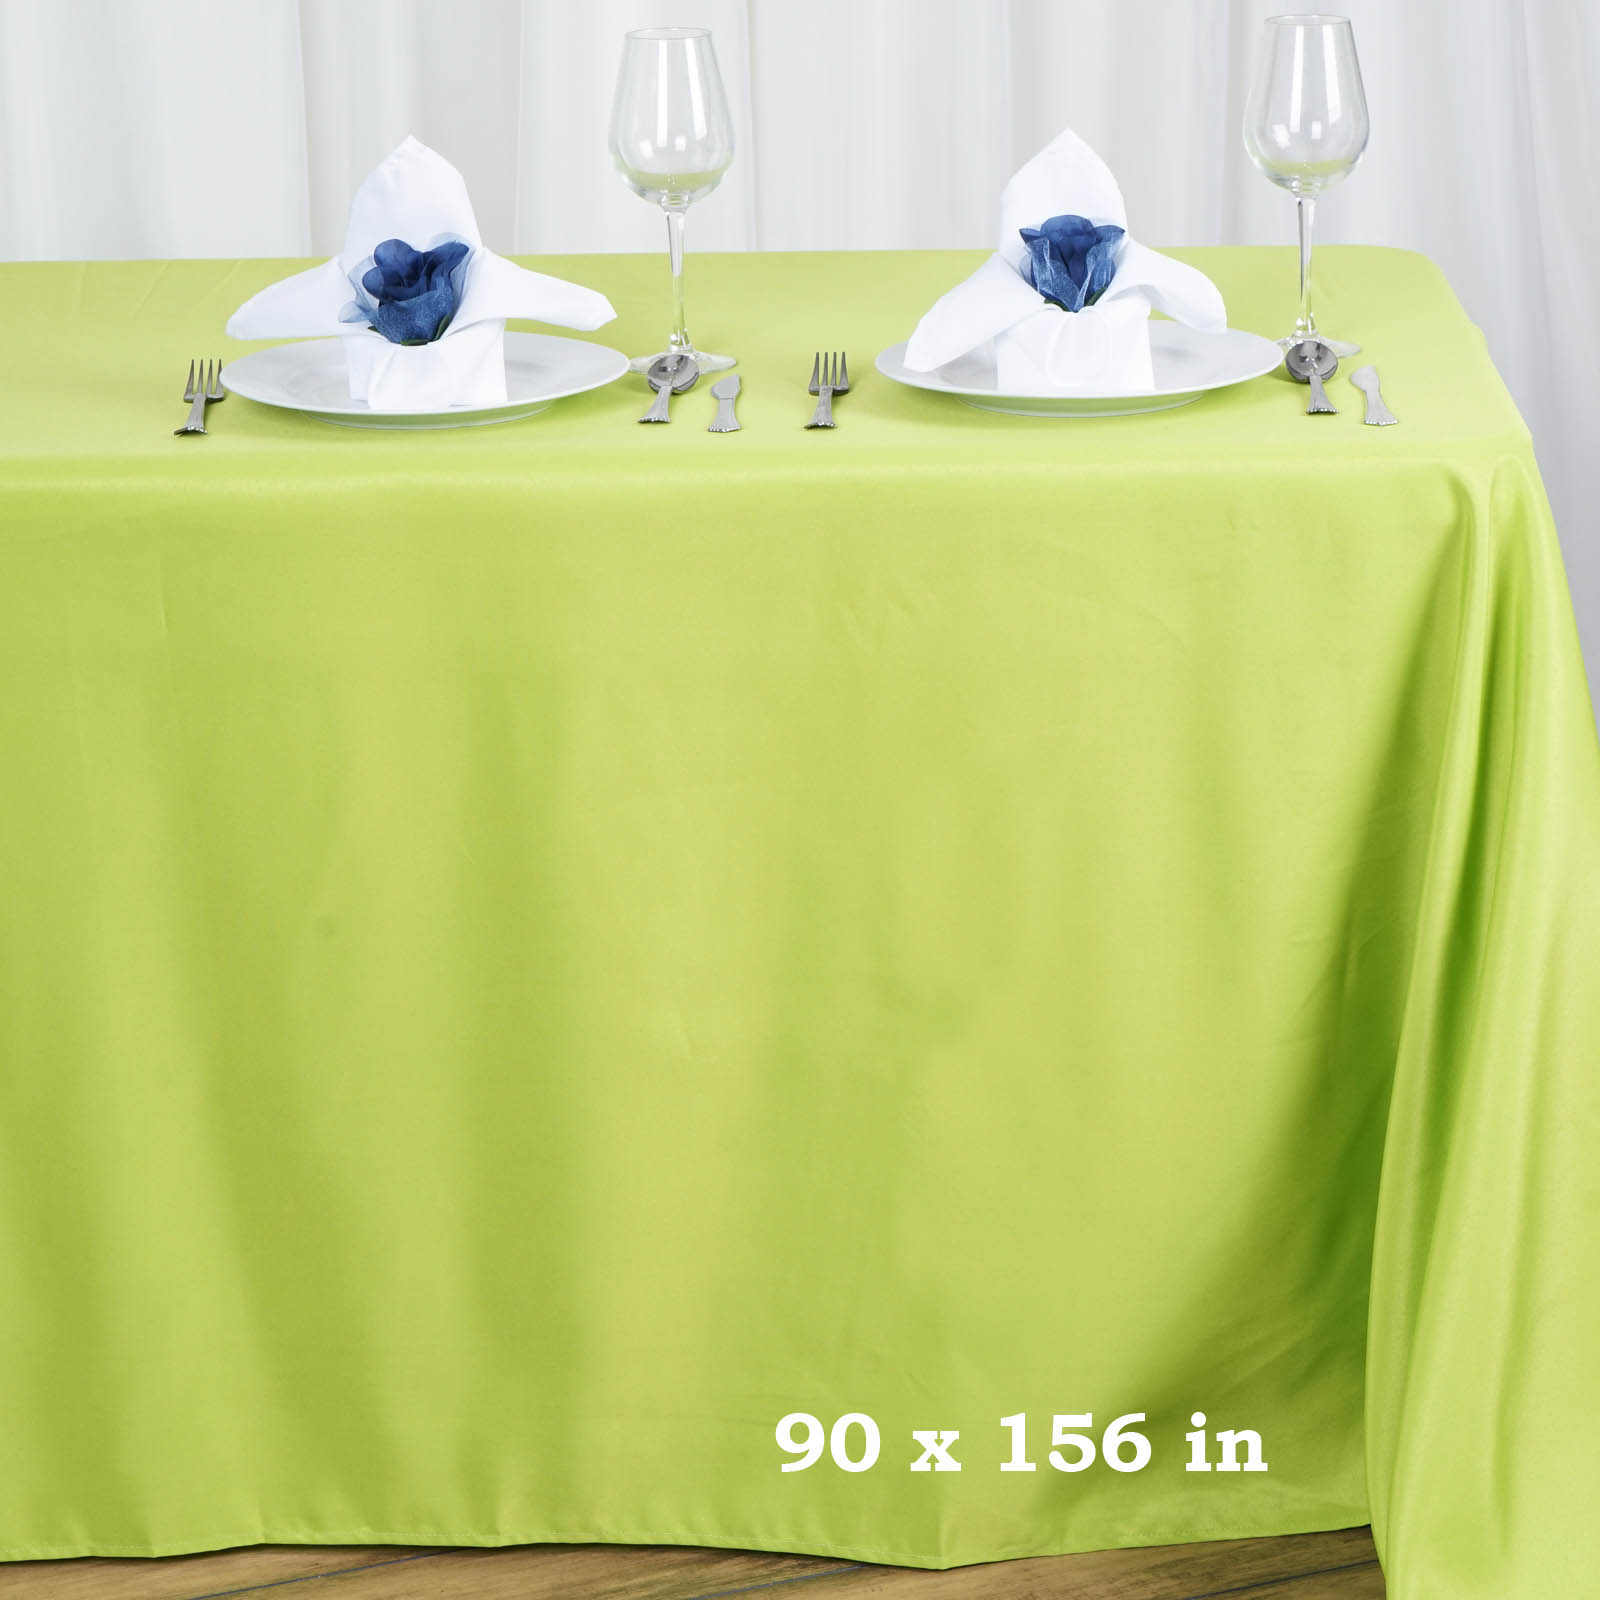 "BalsaCircle 90"" x 156"" Polyester Rectangular Tablecloth with Rounded Corners for Party Wedding Reception Dining Home Table Linens"